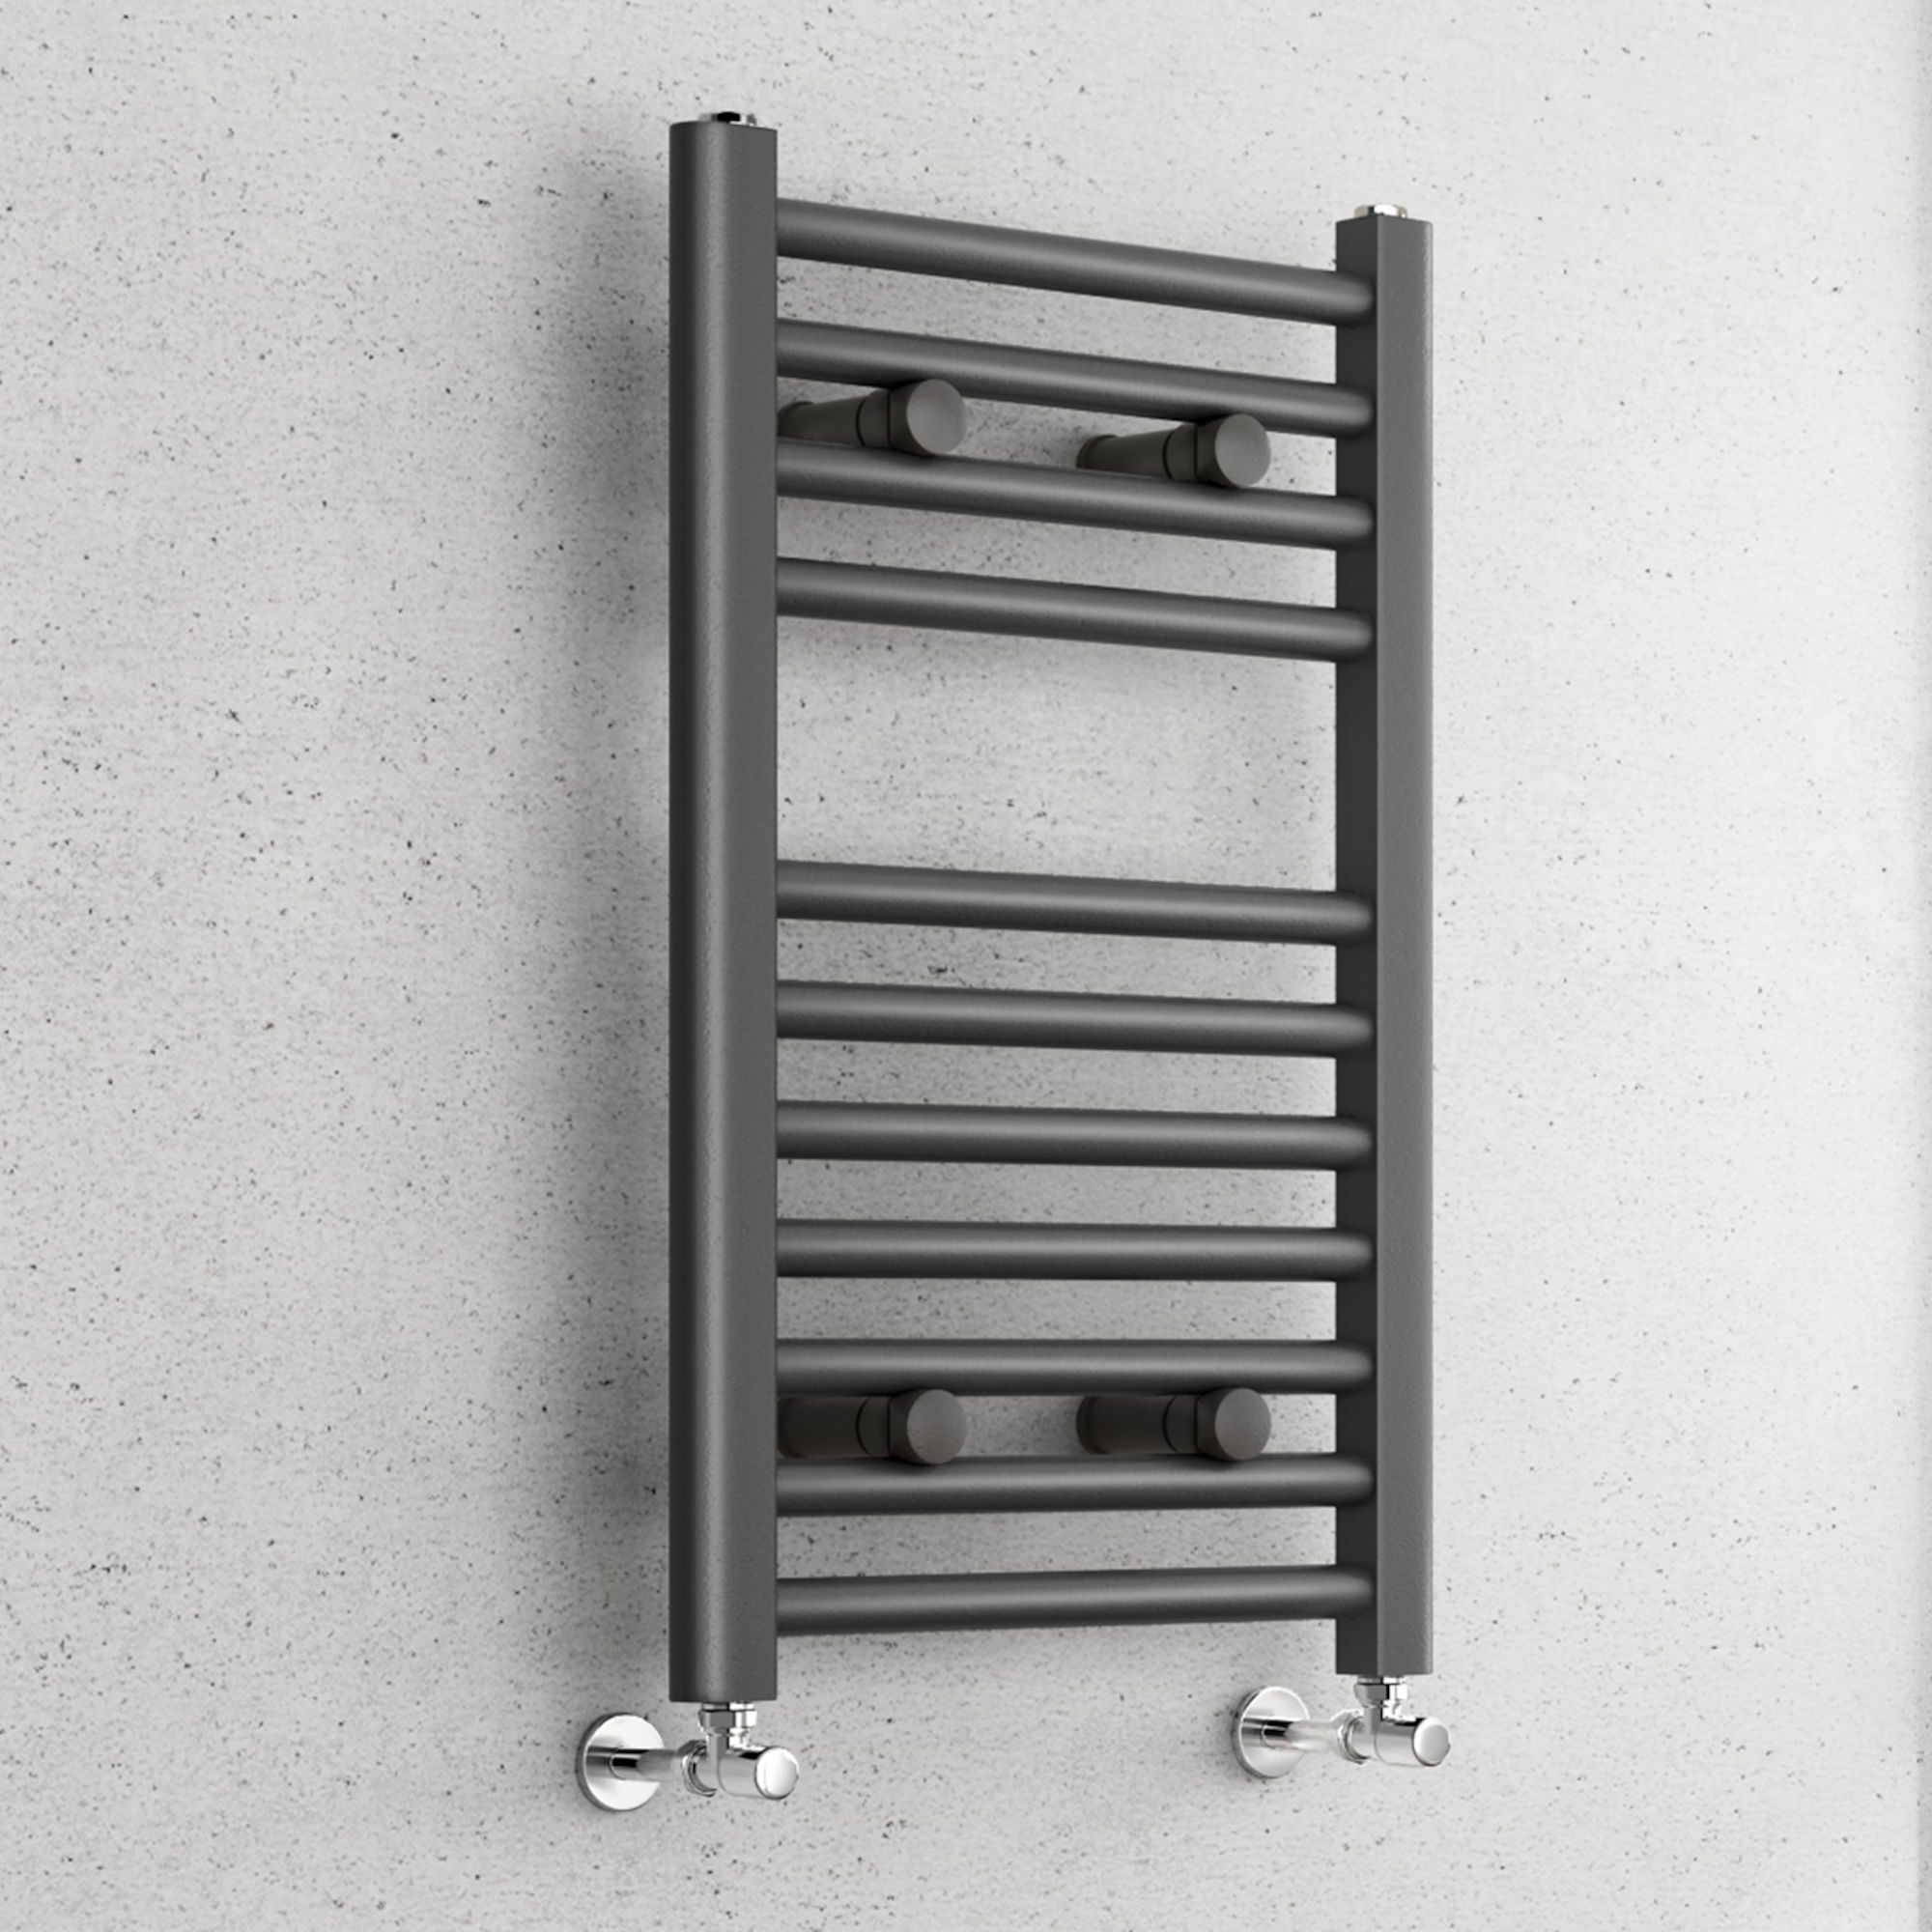 Small Anthracite Towel Radiator Heated Rail